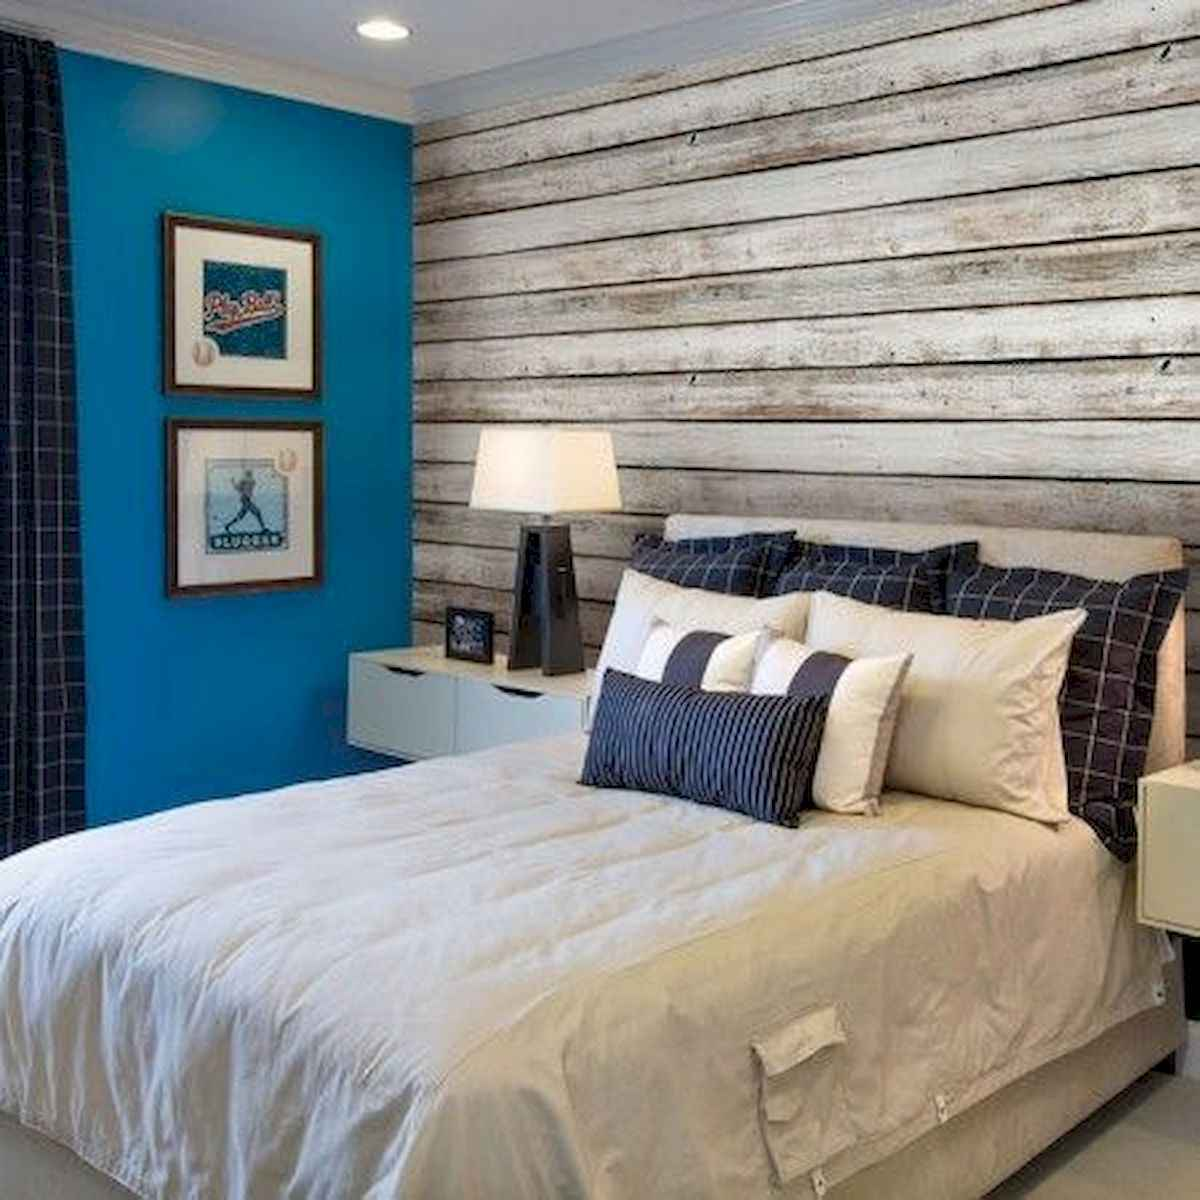 70 Farmhouse Wall Paneling Design Ideas For Living Room, Bathroom, Kitchen And Bedroom (1)